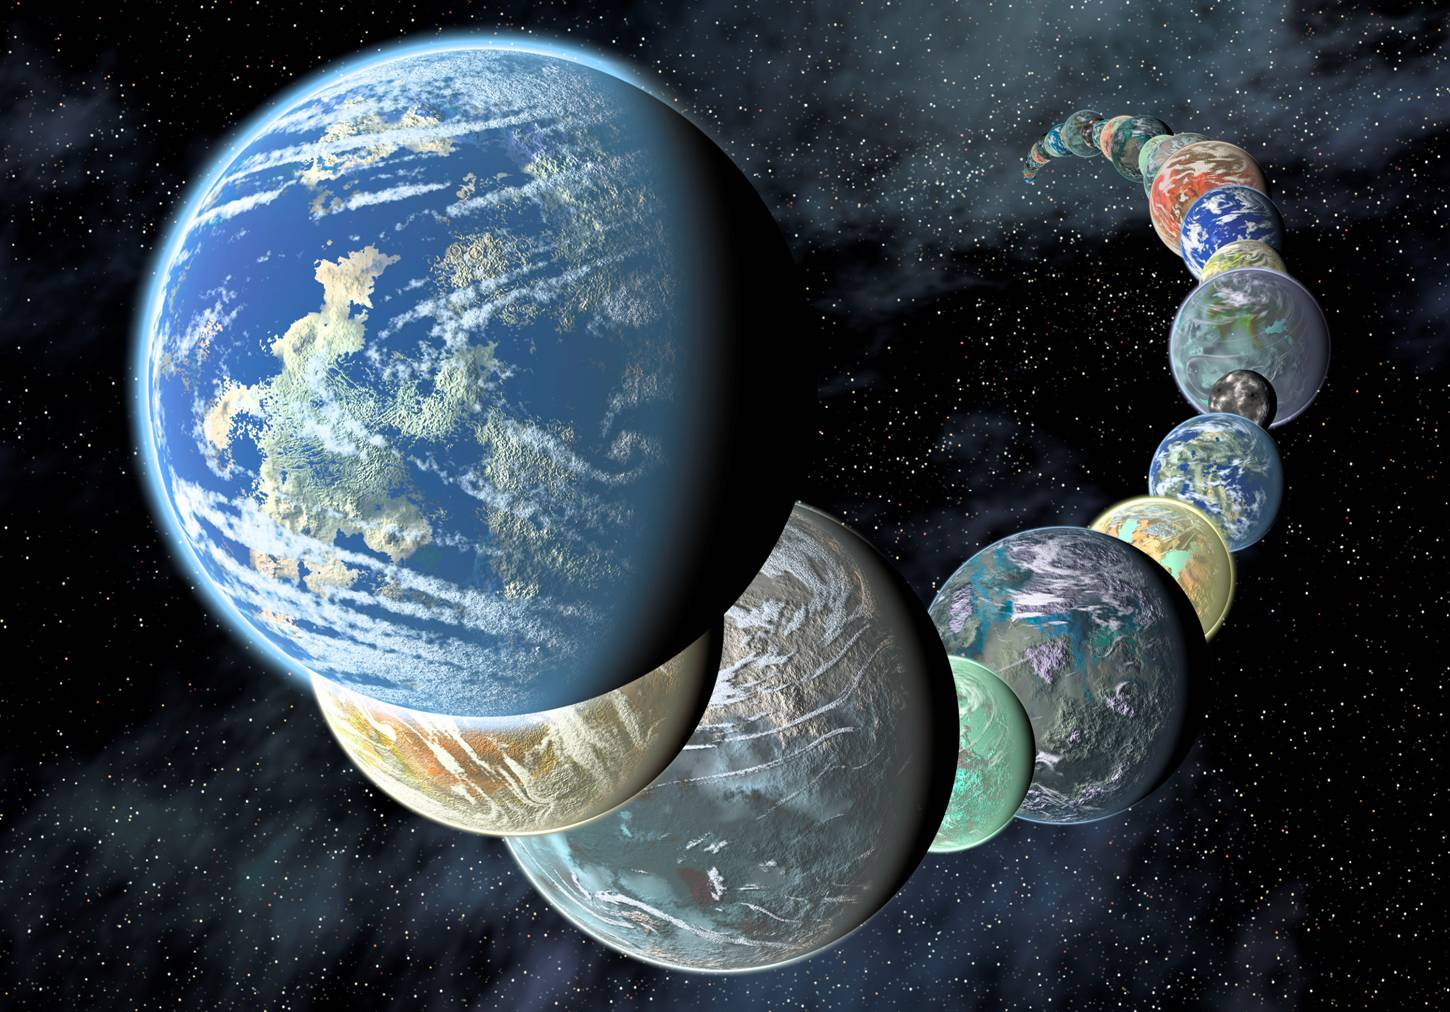 NASA-illustration-of-planets-discovered-by-the-Kepler-telescope-used-by-AmericaSpace